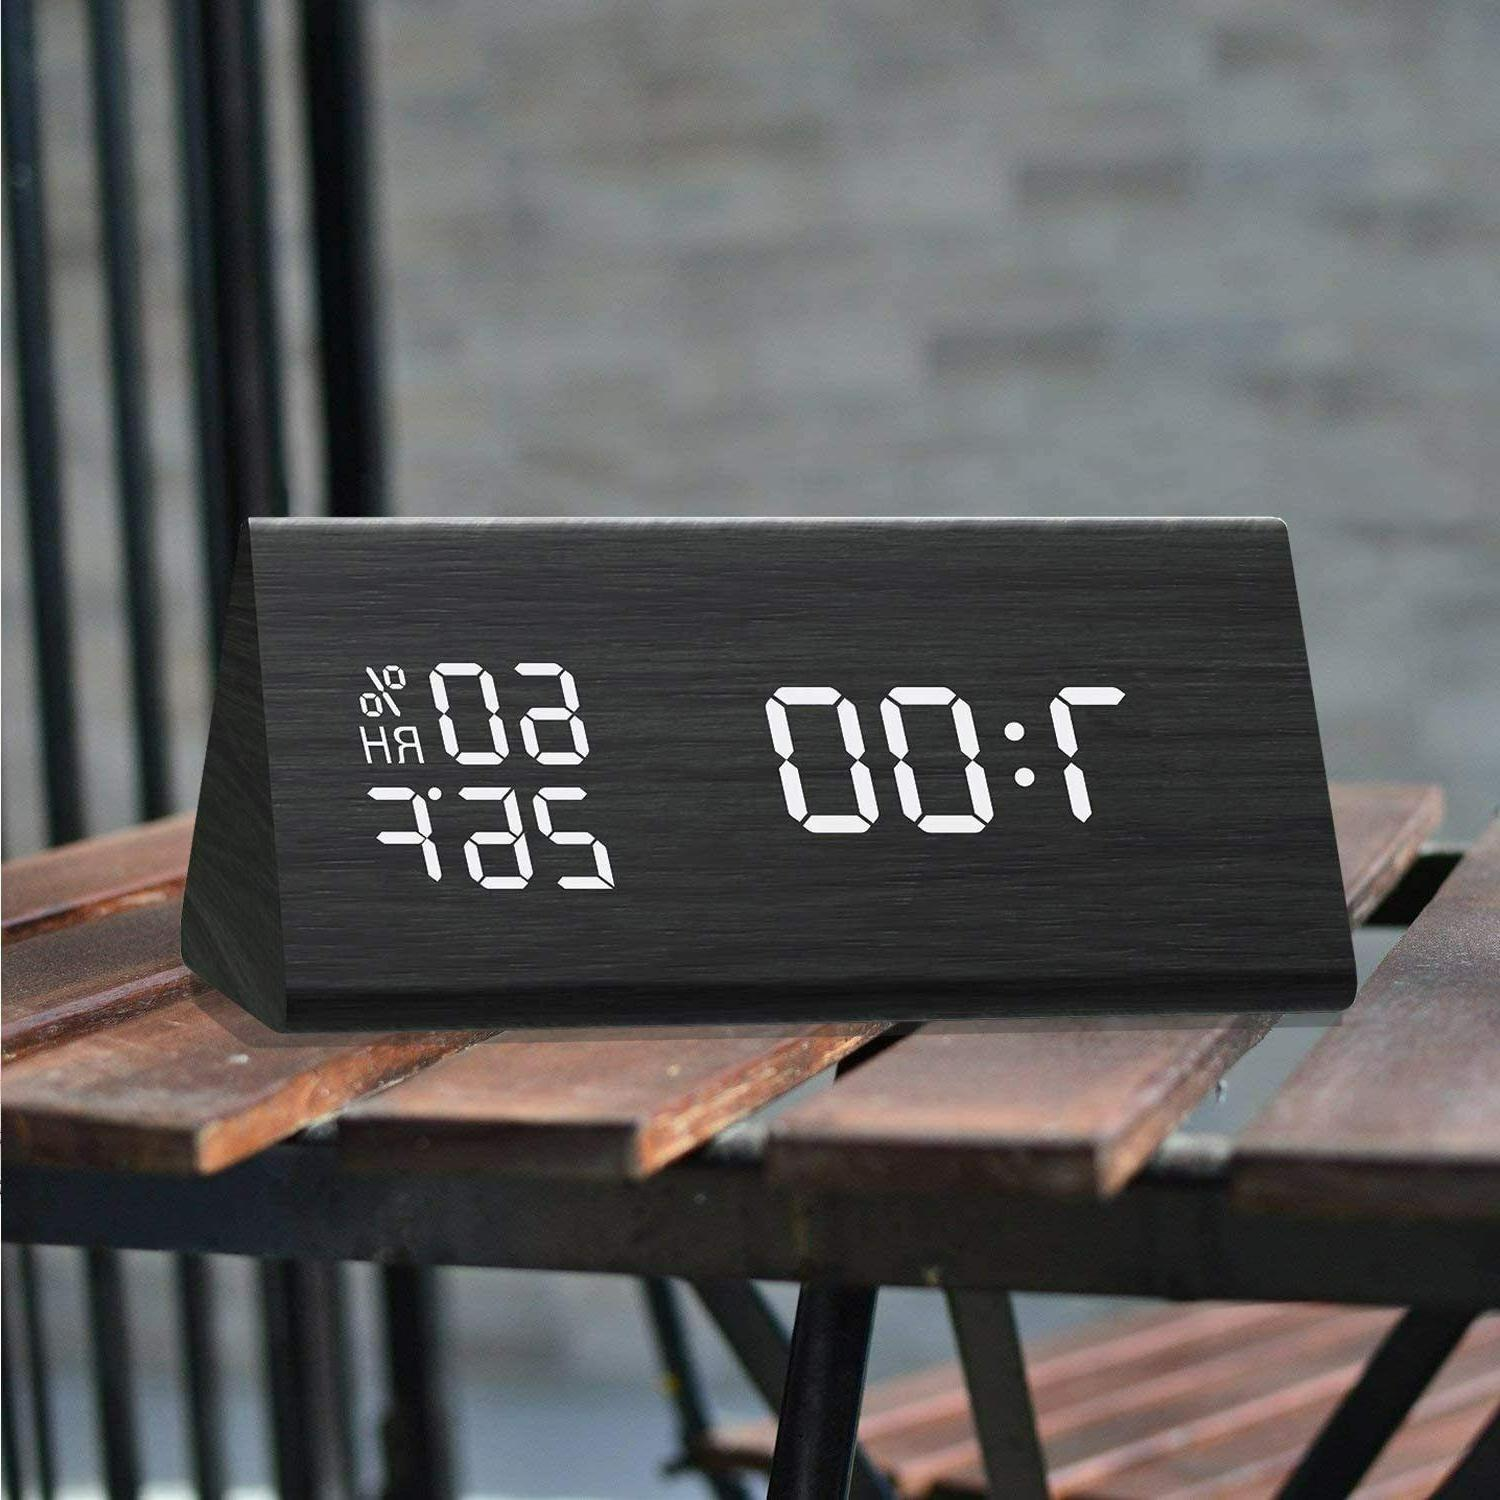 MEKO Wood Digital Clocks Bedrooms LED Display, Levels, Snooze